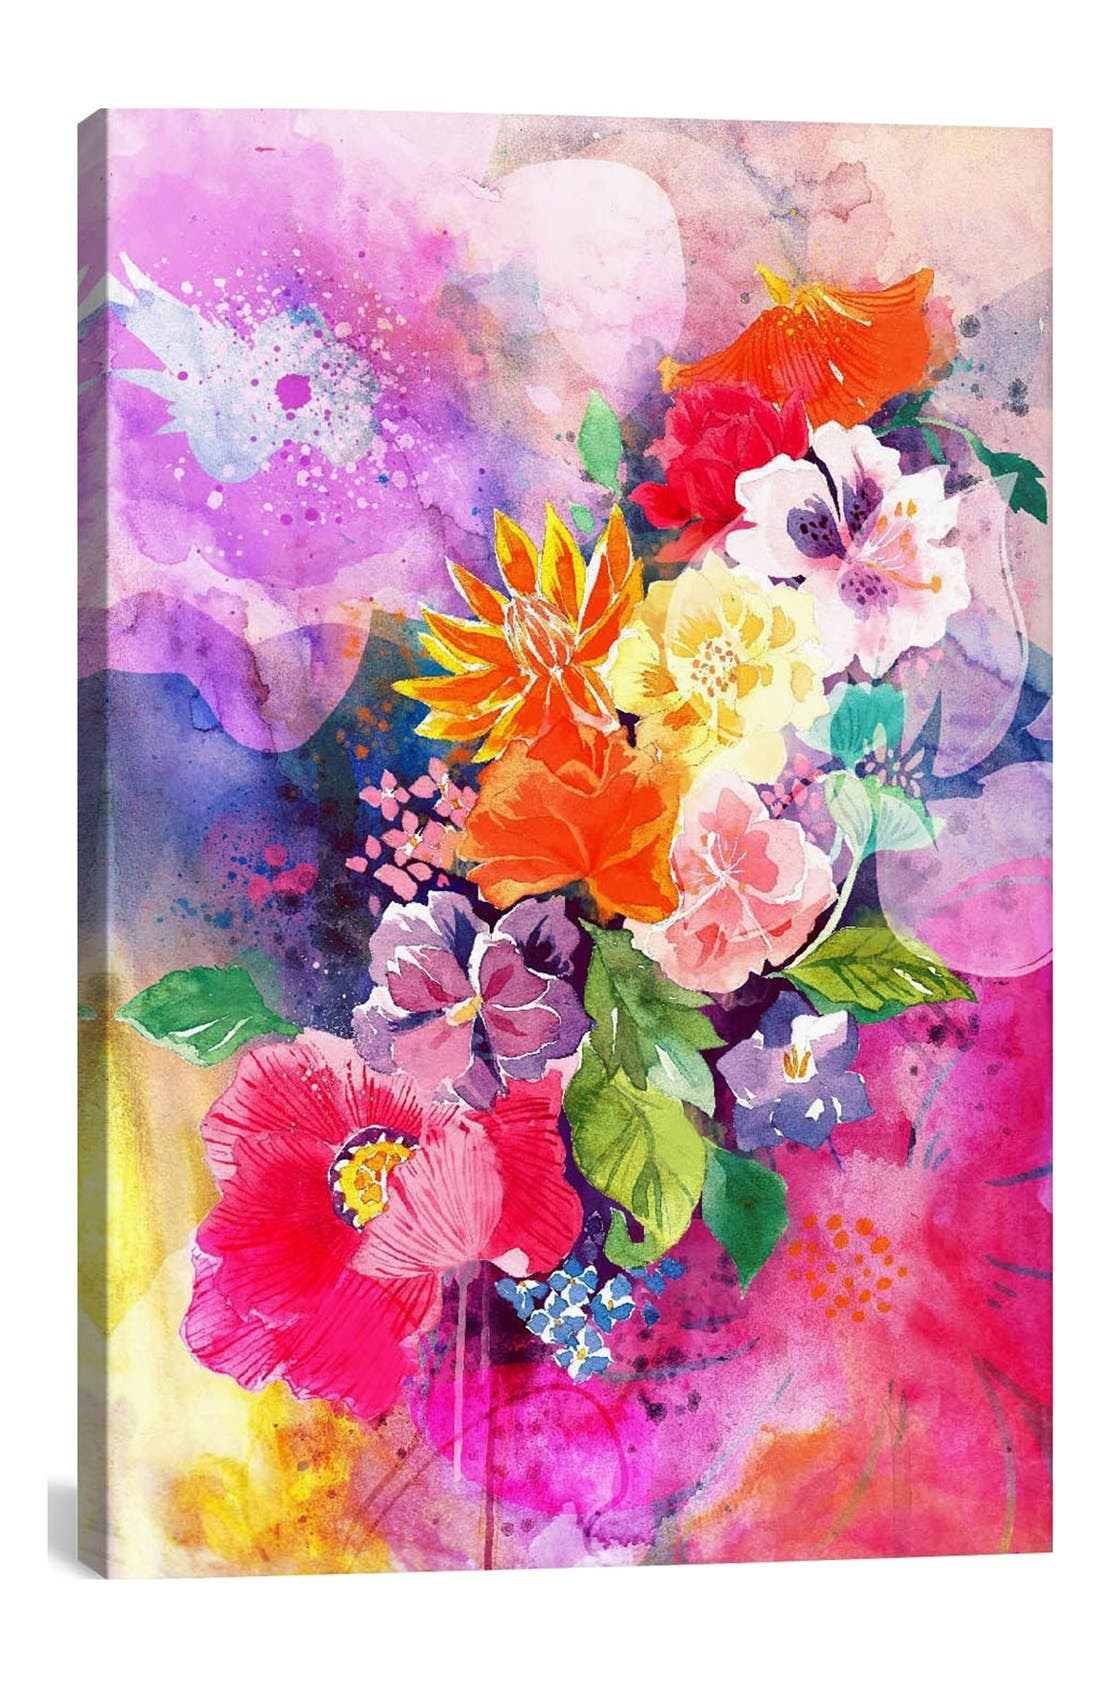 Main Image - iCanvas 'Spring Flowers - DarkLord' Giclée Print Canvas Art